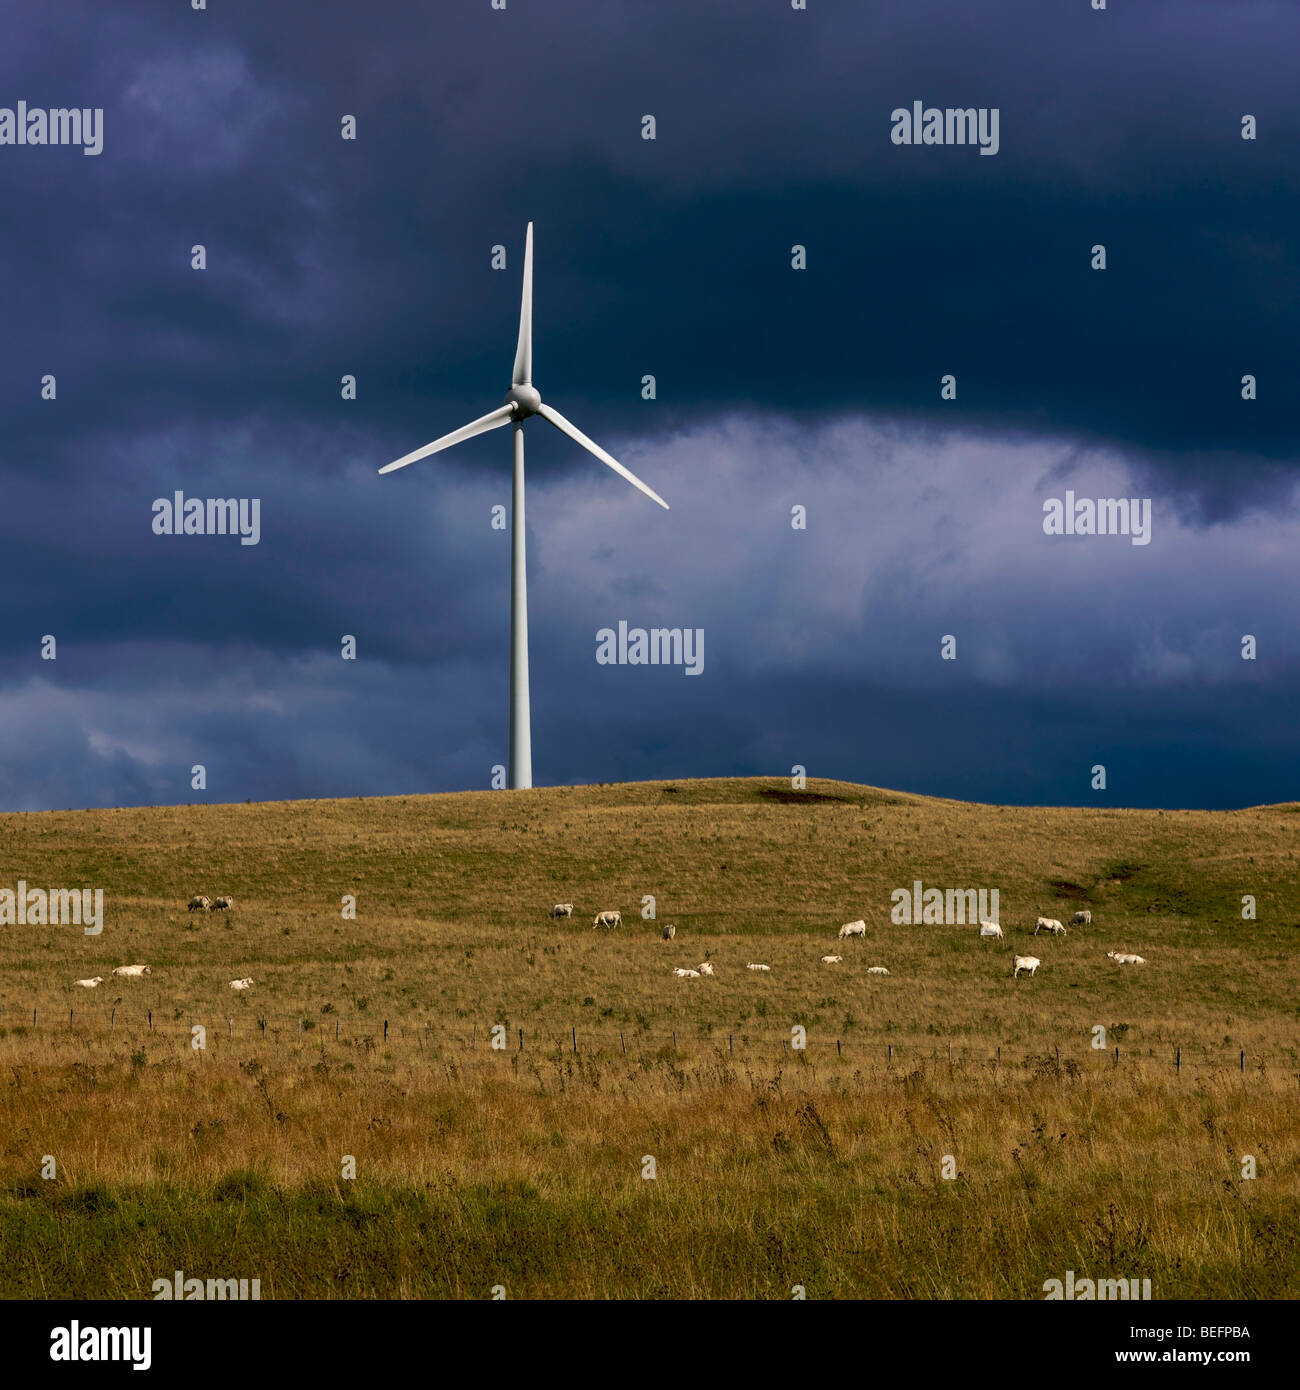 Large wind turbine on a plateau in a rural setting with a dark stormy sky - Stock Image